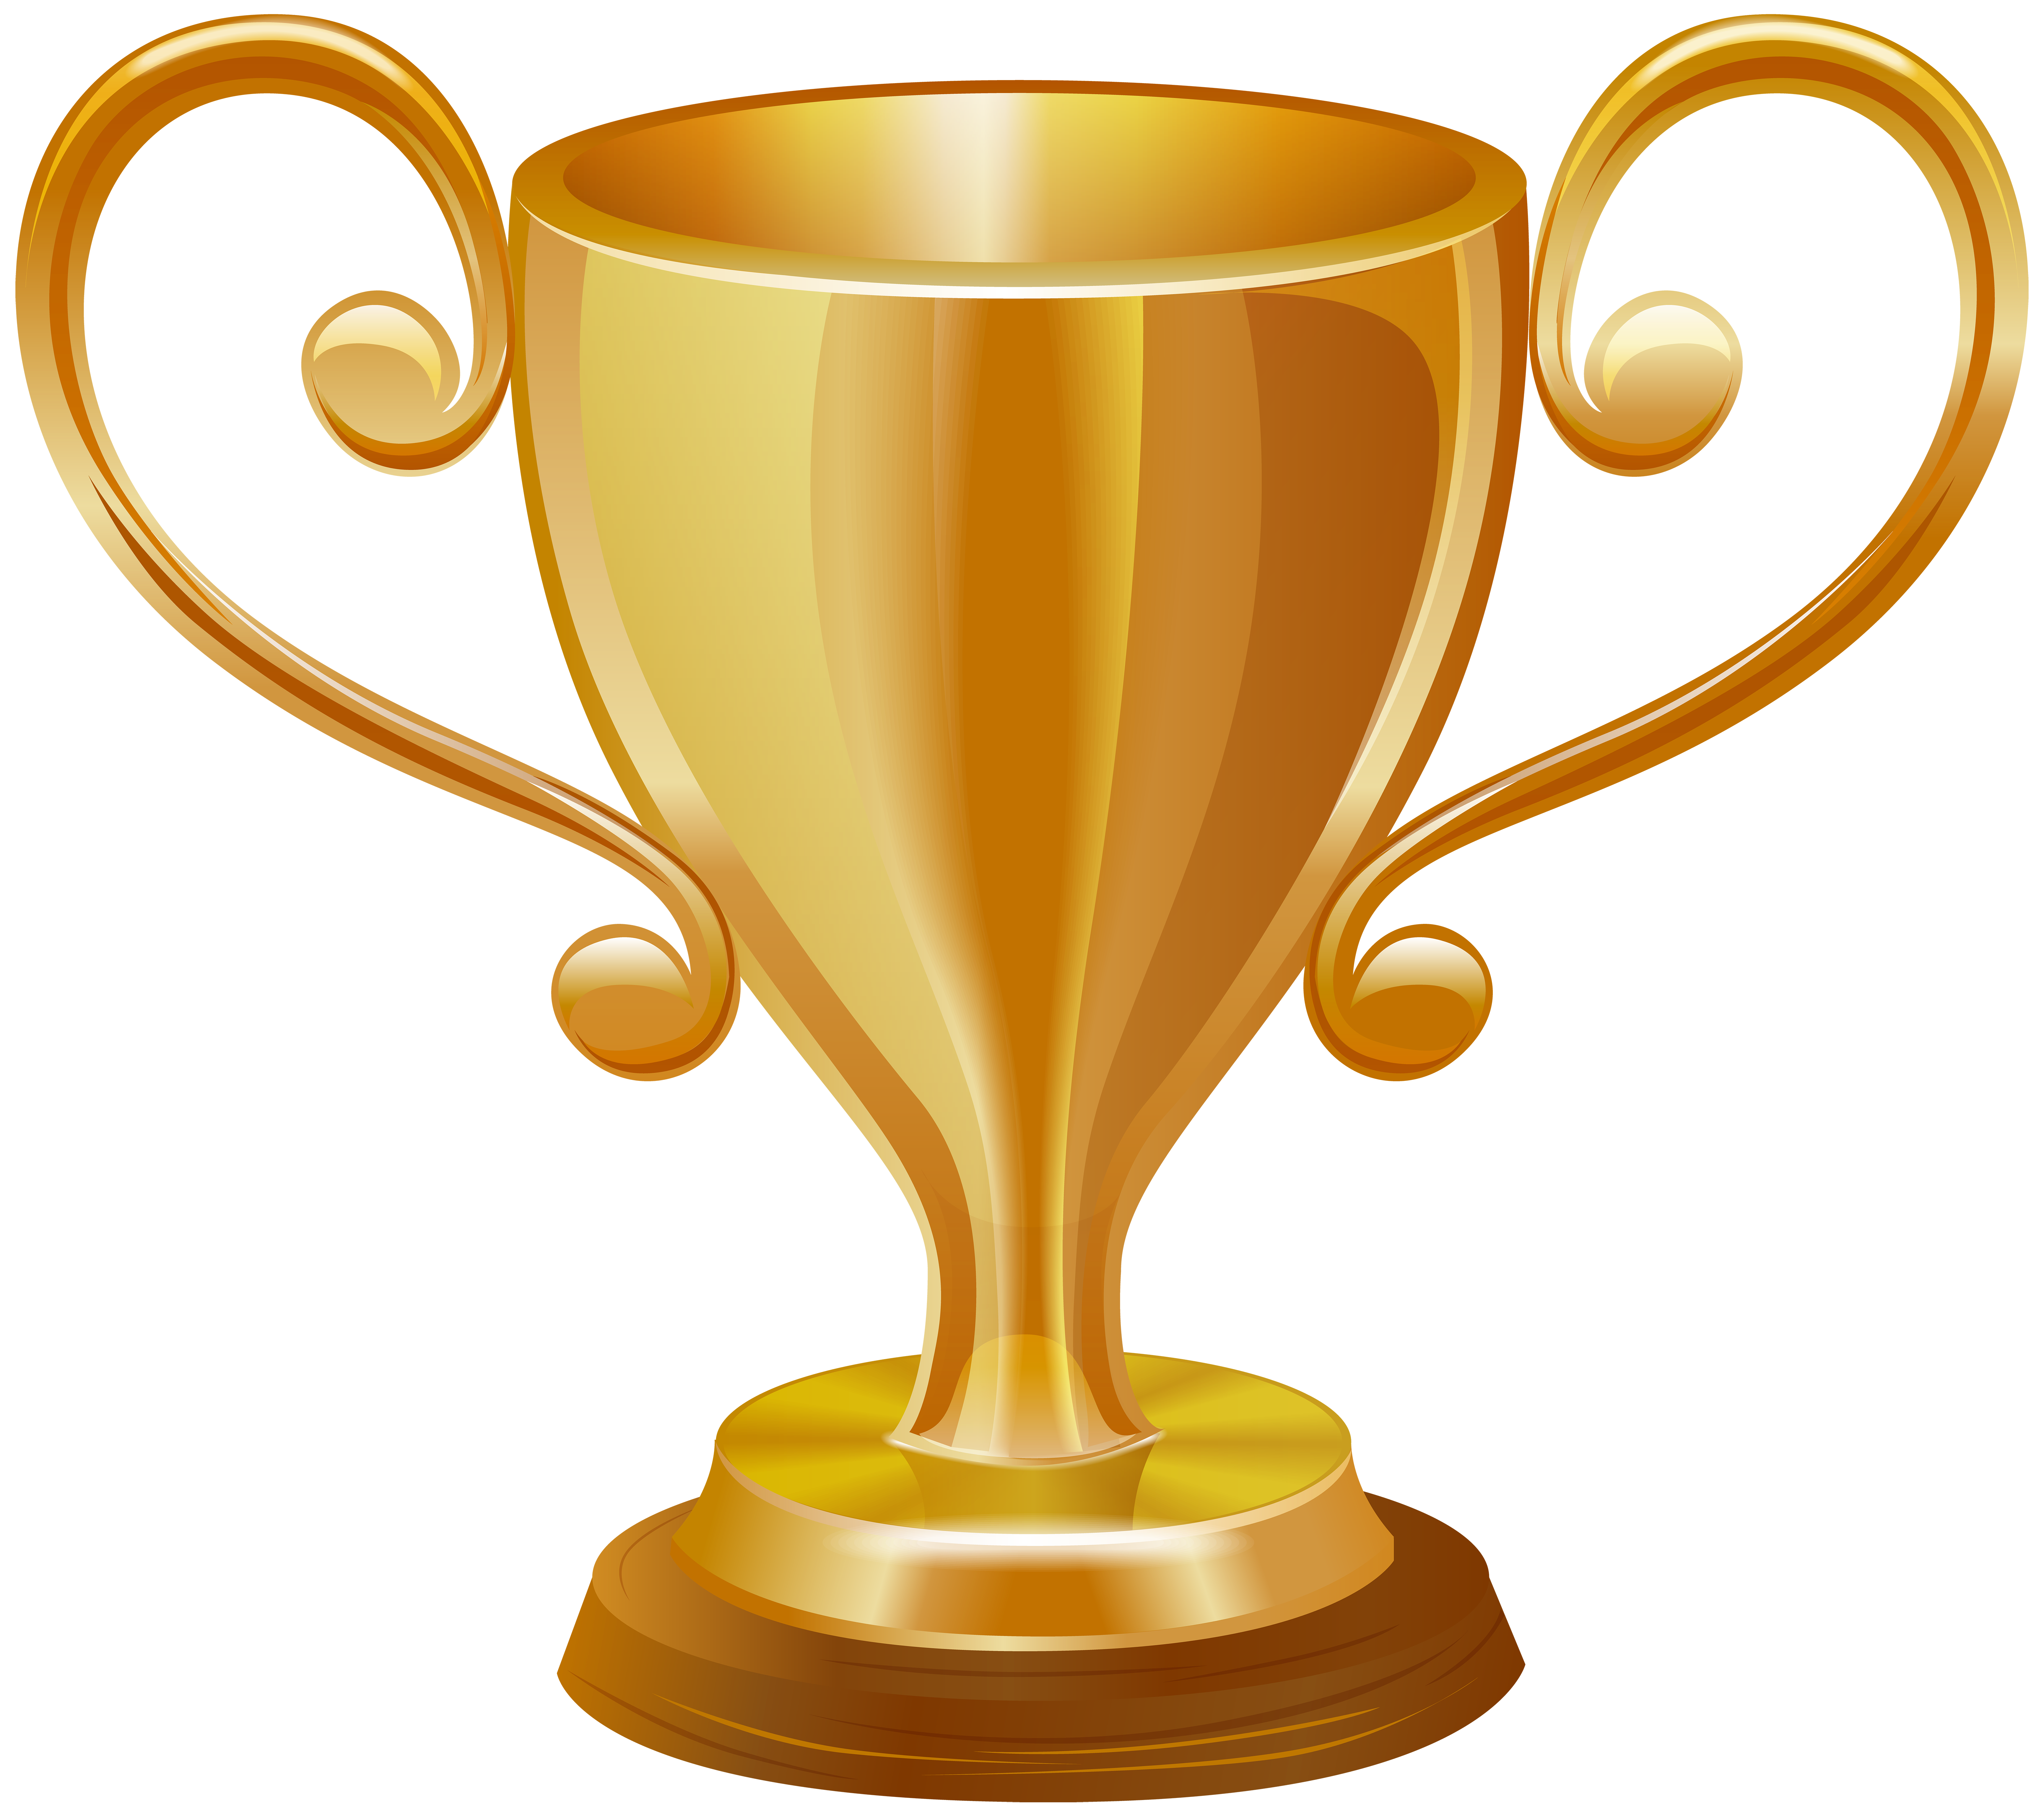 Car trophy clipart clipart freeuse library Trophy Clipart   jokingart.com clipart freeuse library